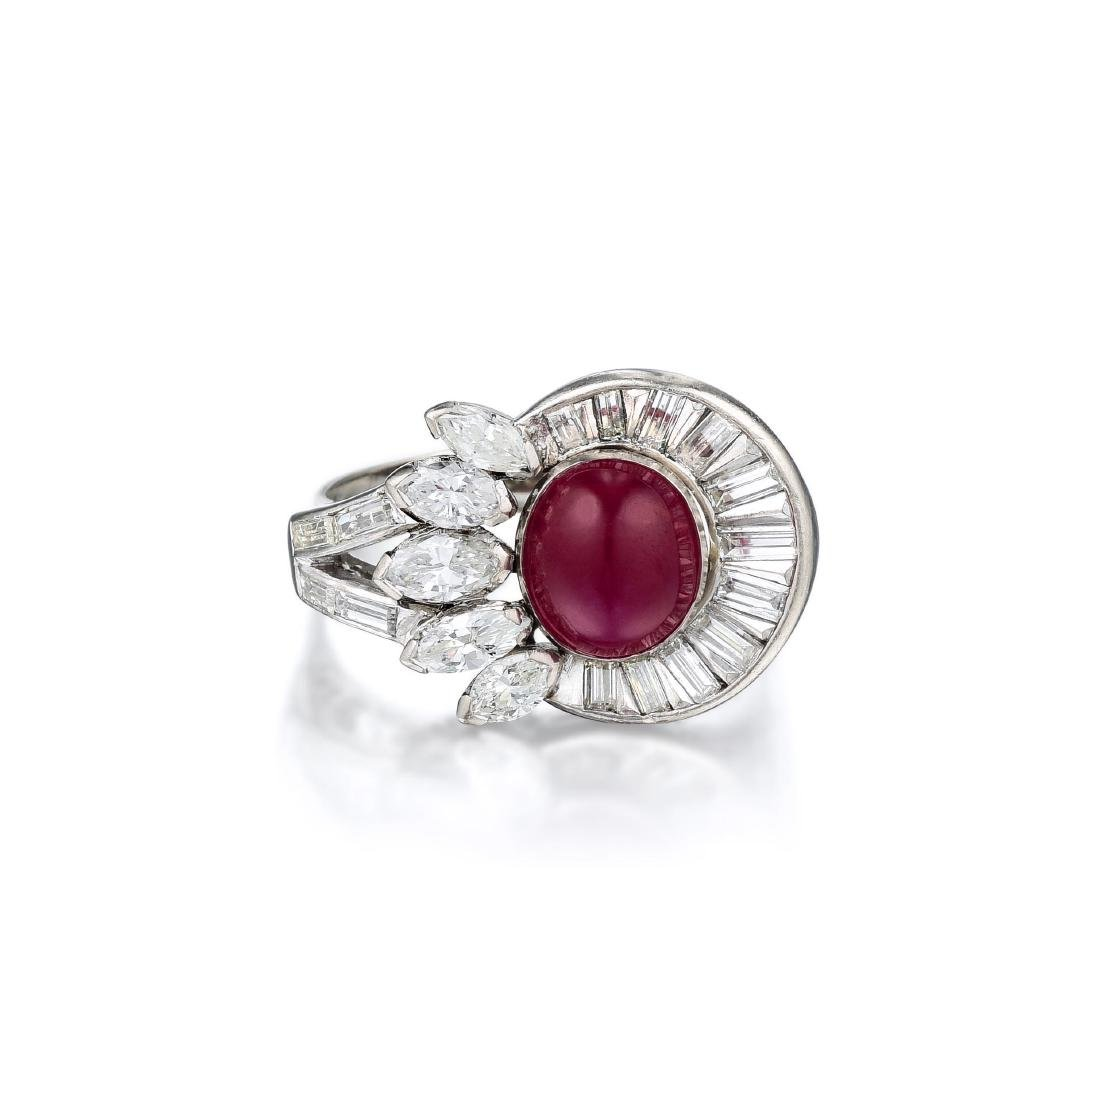 A 14K White Gold Ruby and Diamond Ring